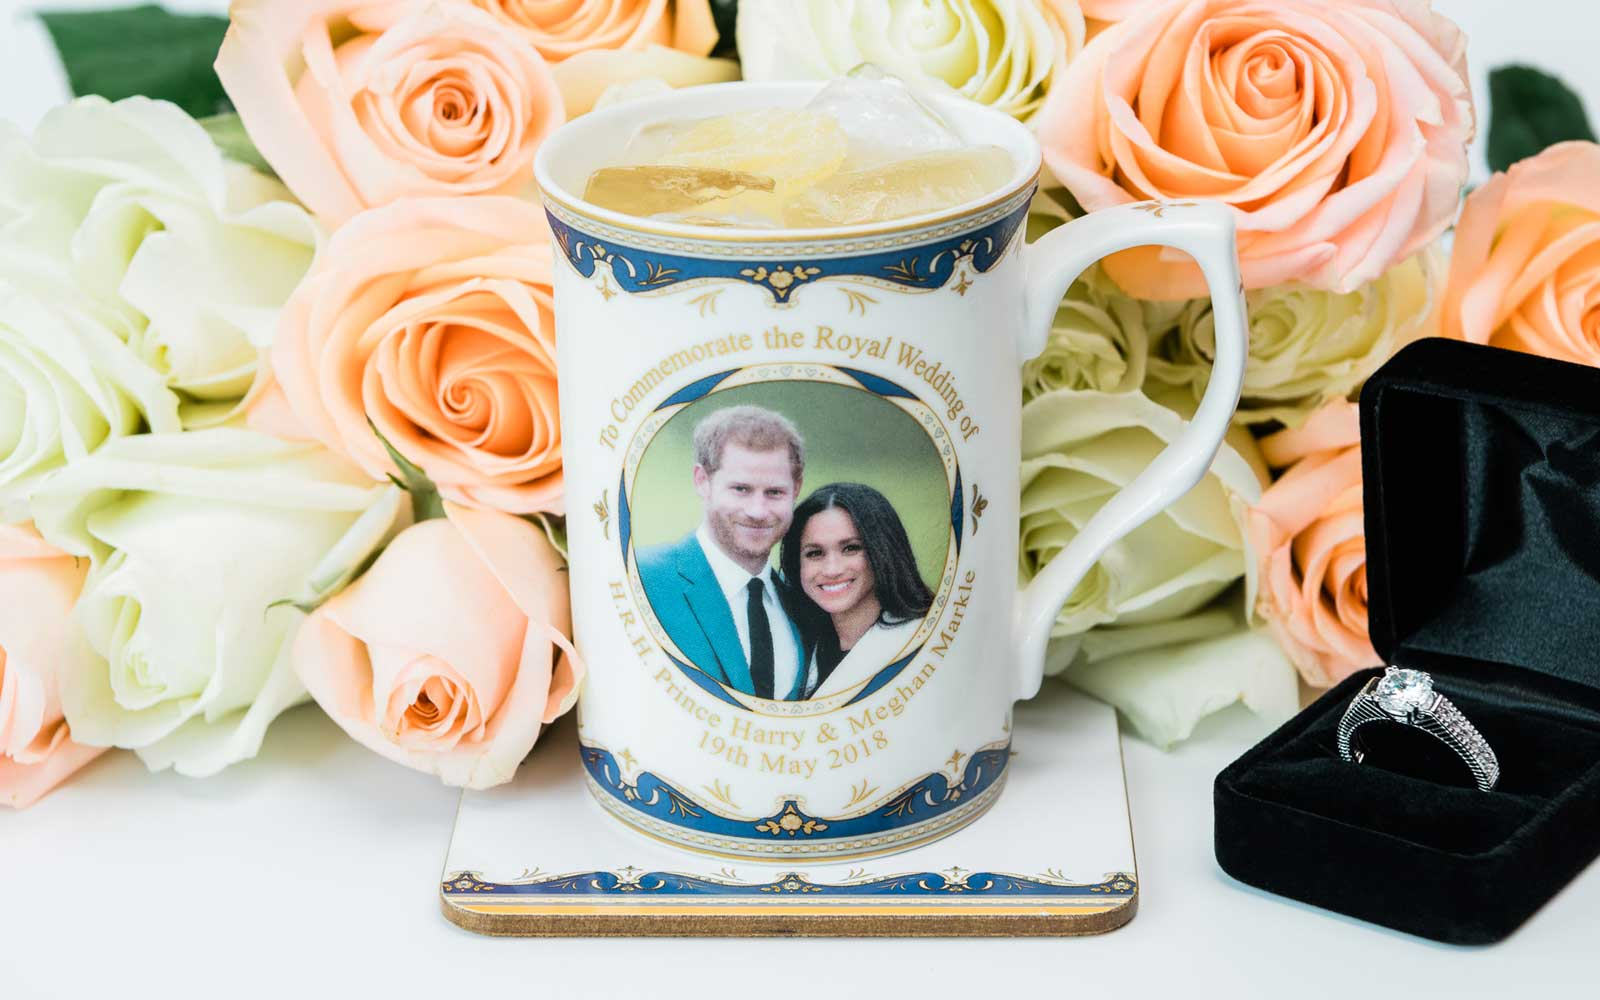 'When Harry Met Meghan' is one of 11 original cocktails at Drink Company's Royal Wedding PUB, running May 4-20